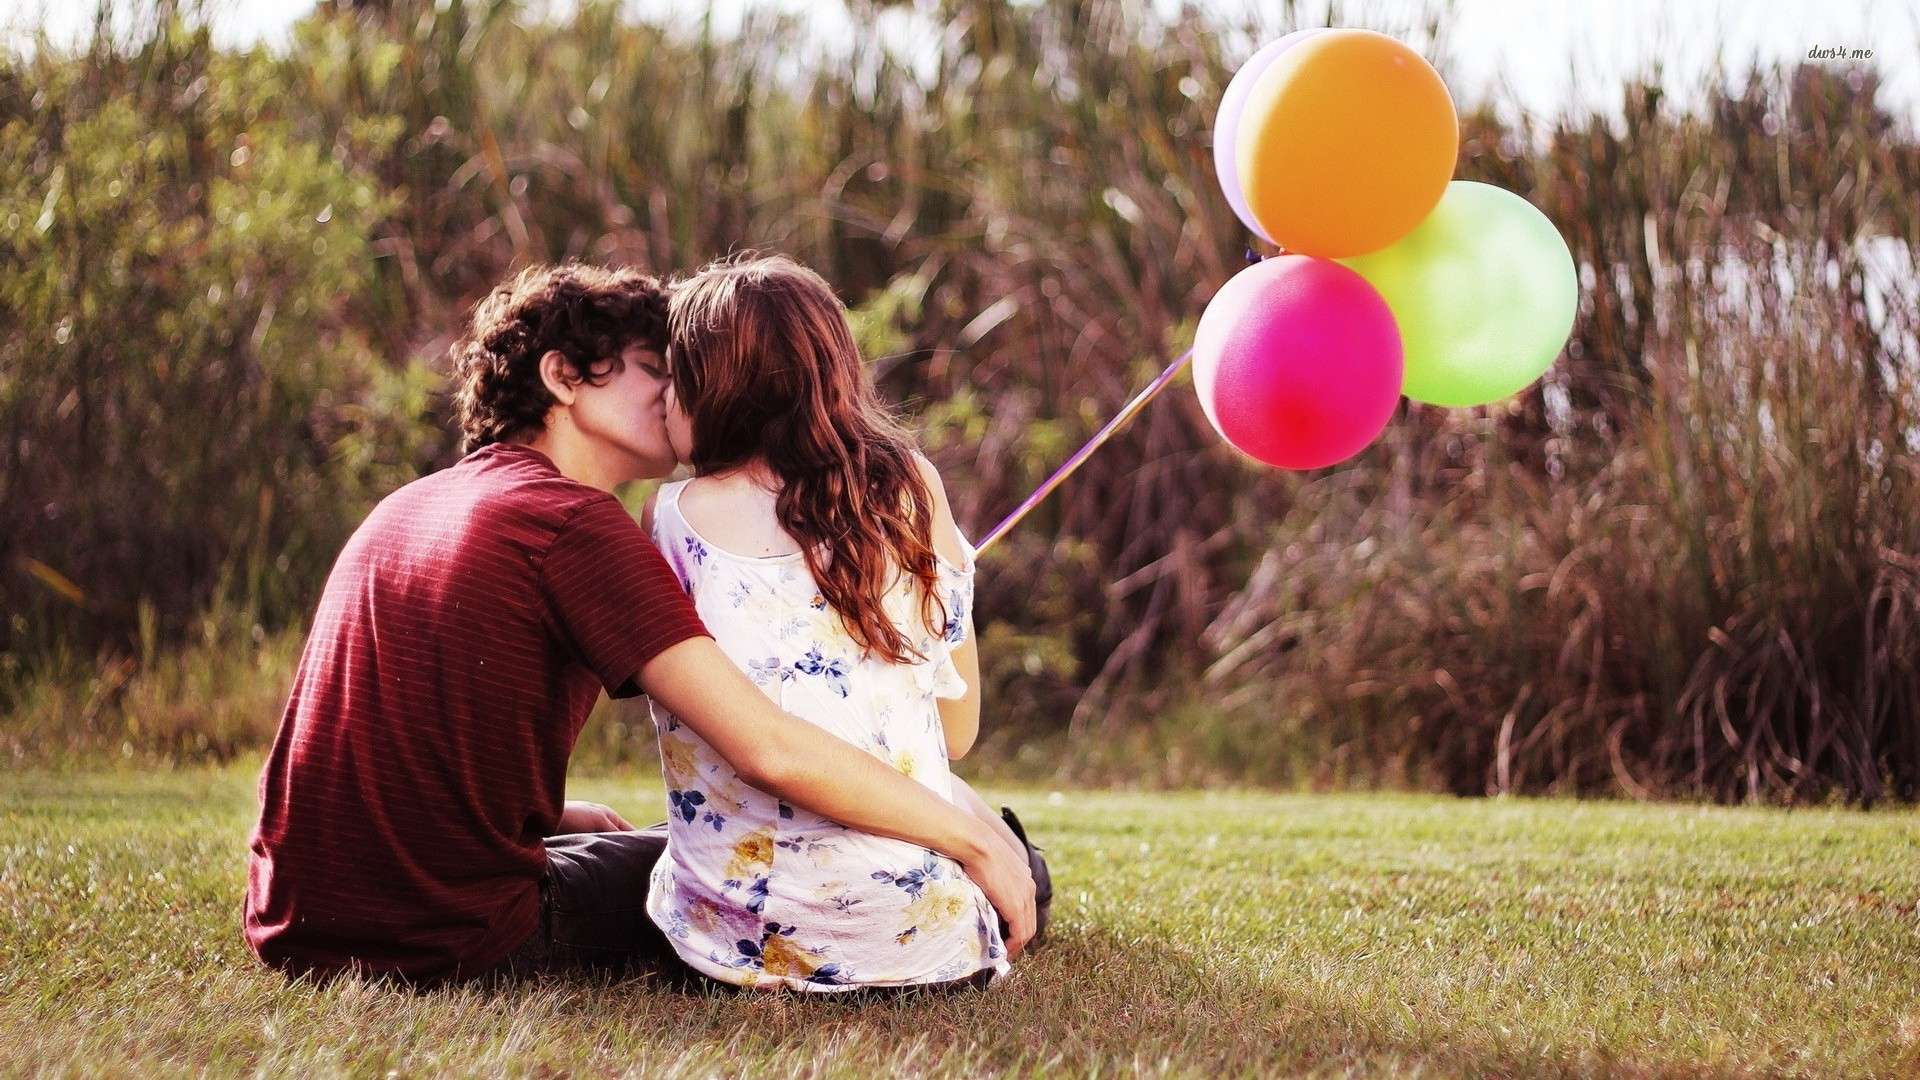 17439-couple-with-balloons-1920x1080-photography-wallpaper